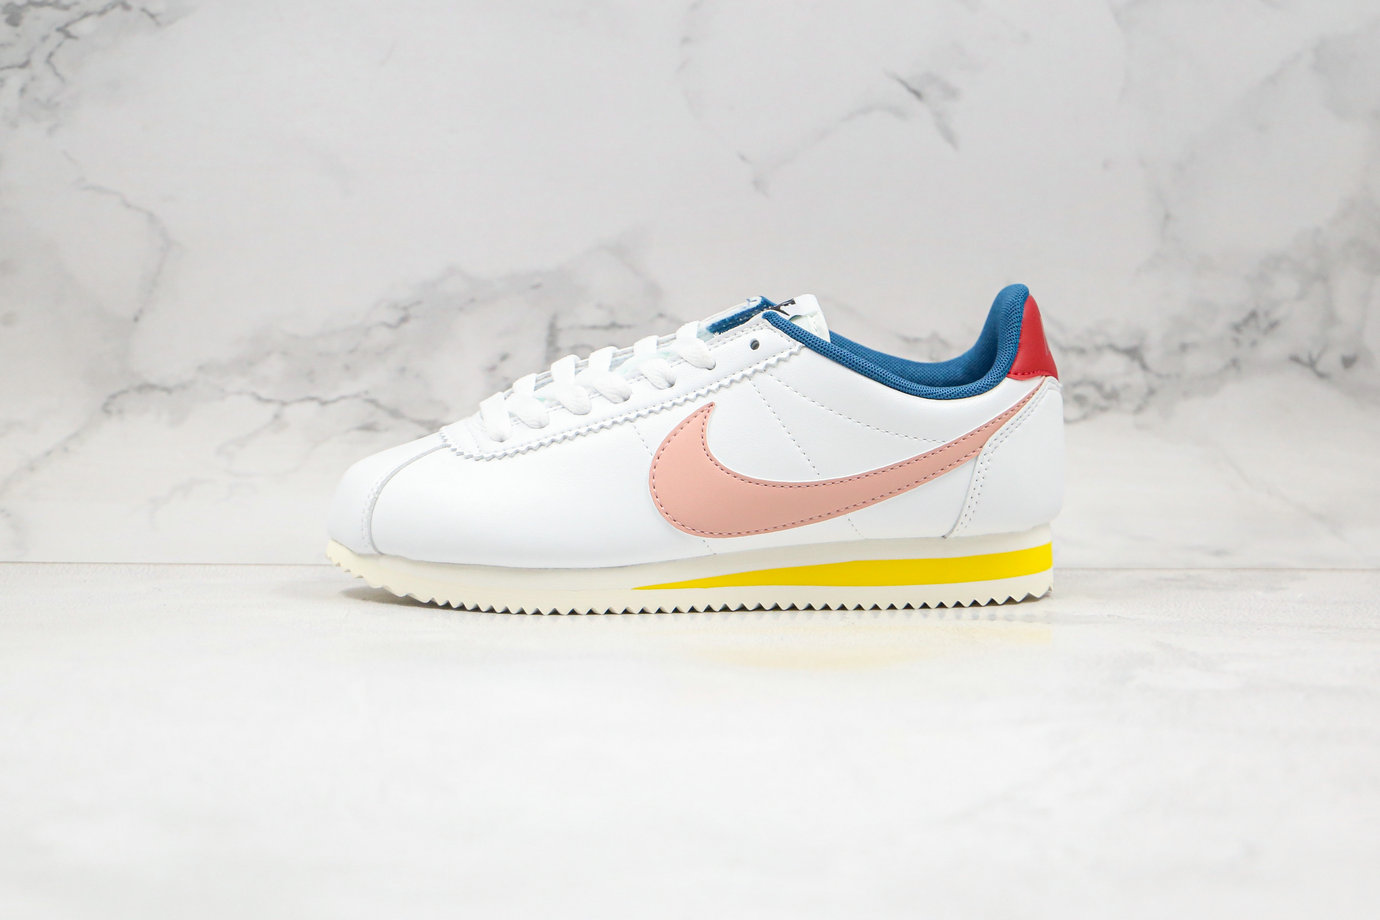 2020 Cheapest Nike Classic Cortez Leather Summit White Coral Stardust 807471-114 - www.wholesaleflyknit.com